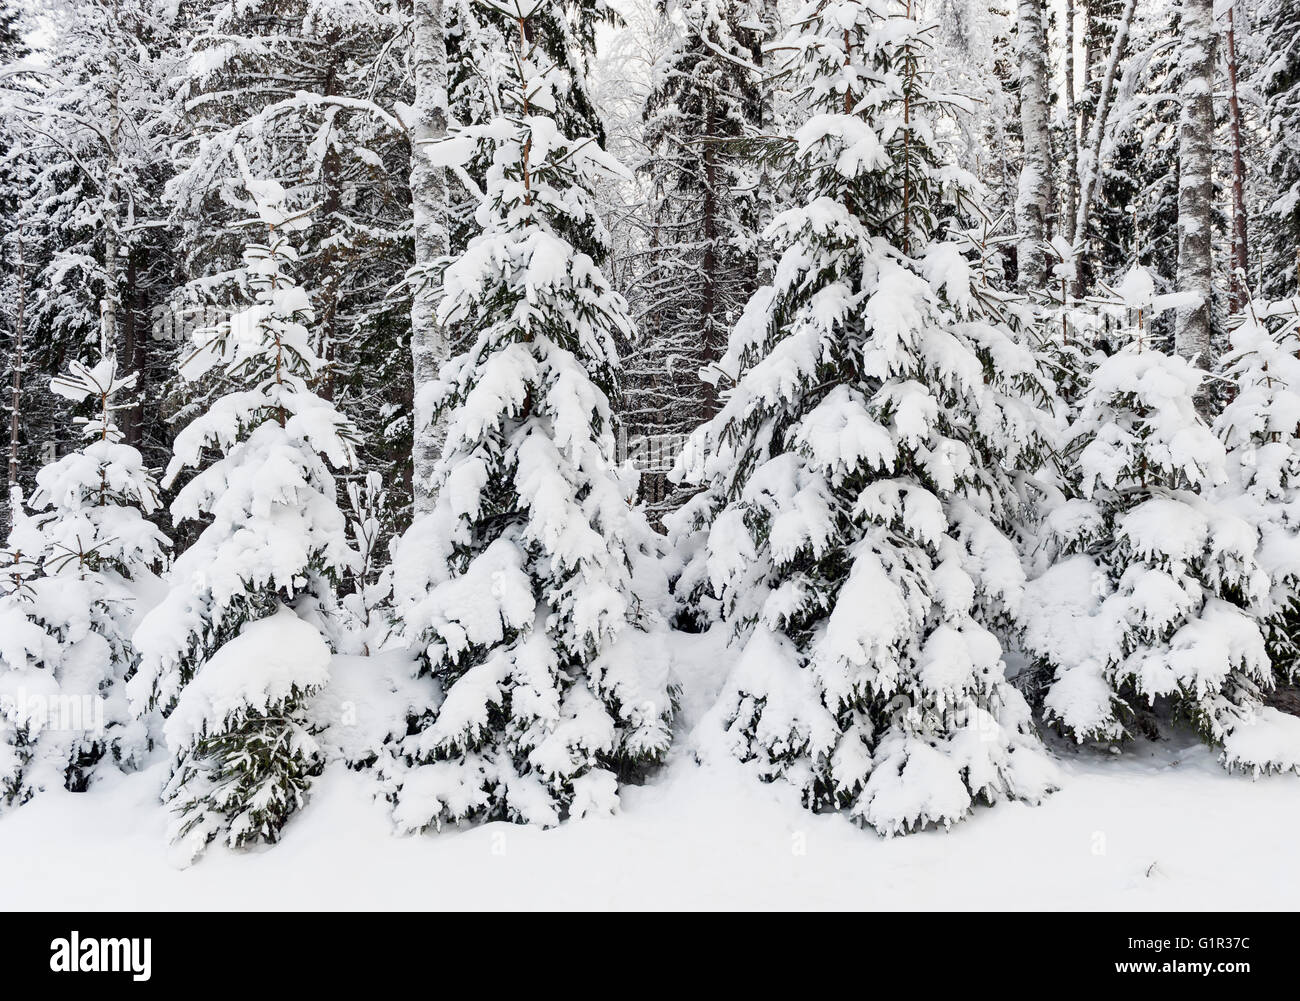 Snow-covered spruce forest, Sweden - Stock Image